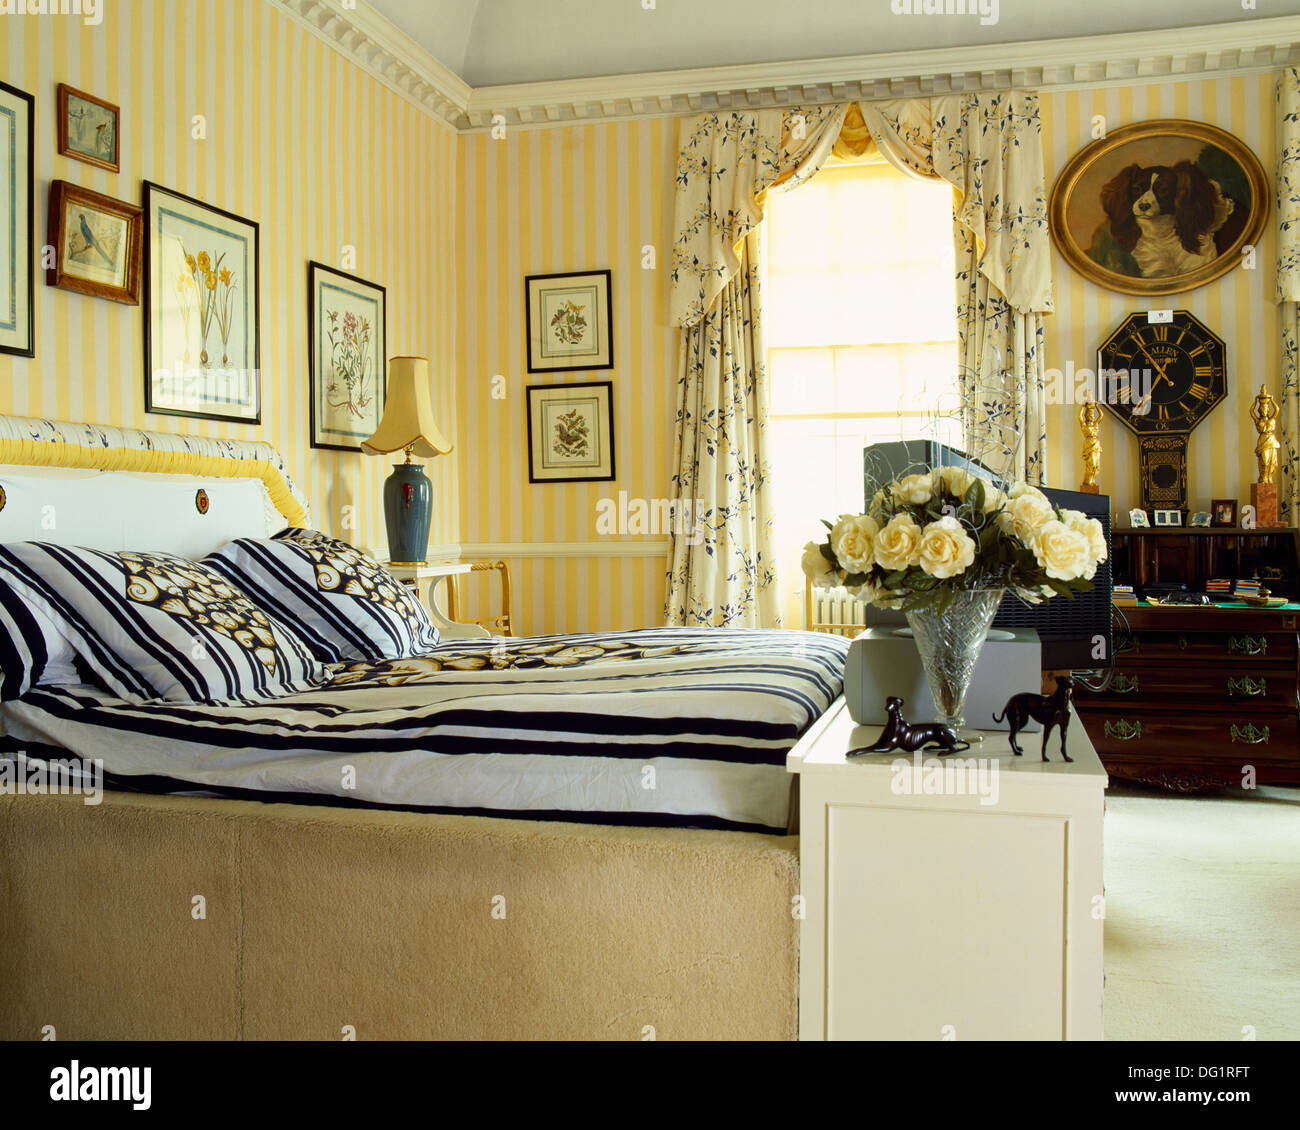 Yellow Striped Wallpaper And Floral Curtains In Townhouse Bedroom With Black +white Striped Duvet On Fitted Bed